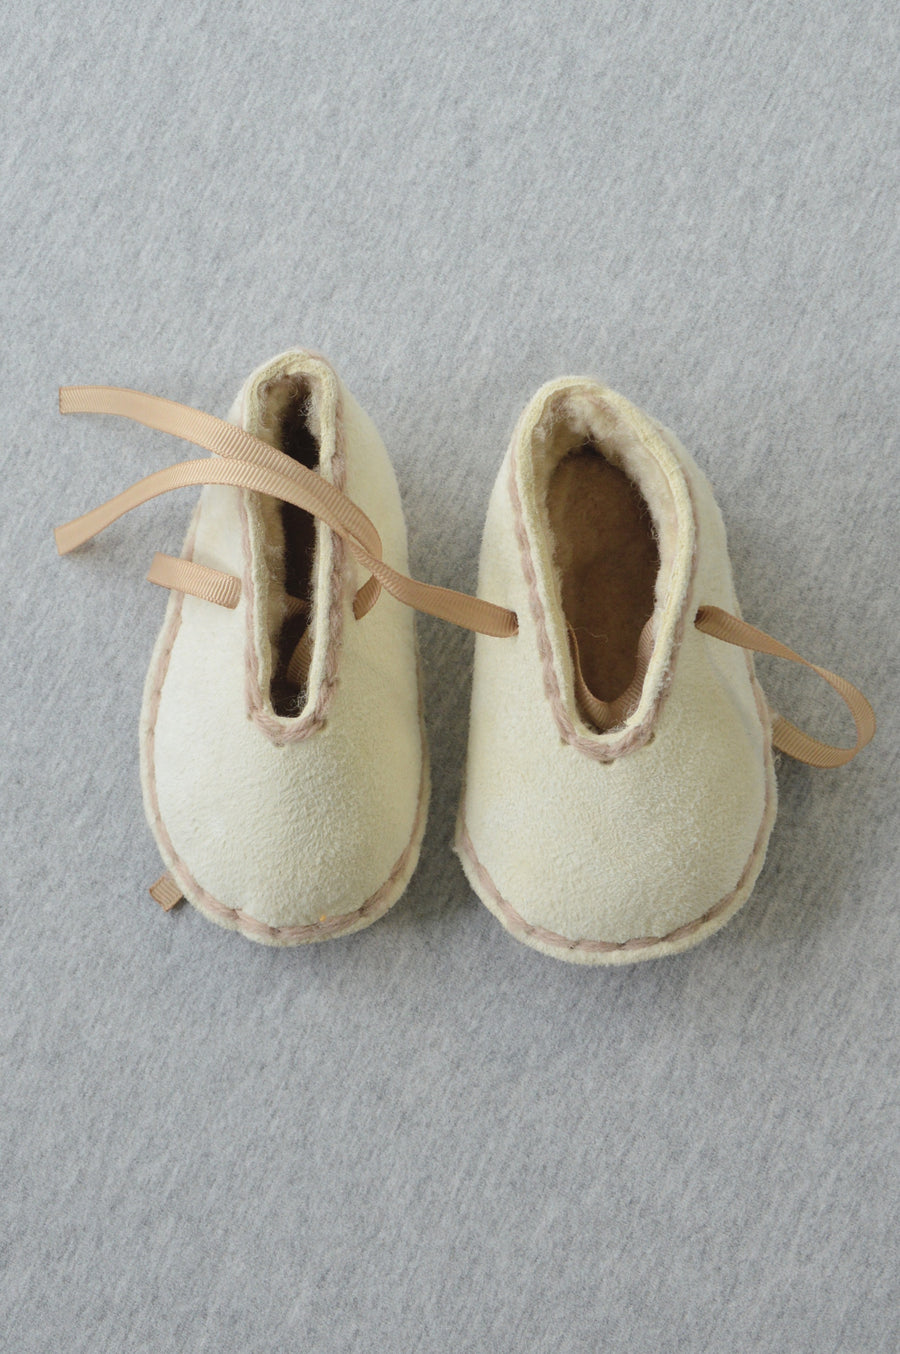 Professionally handmade - nearly new - beige suede slippers, size 9-15m